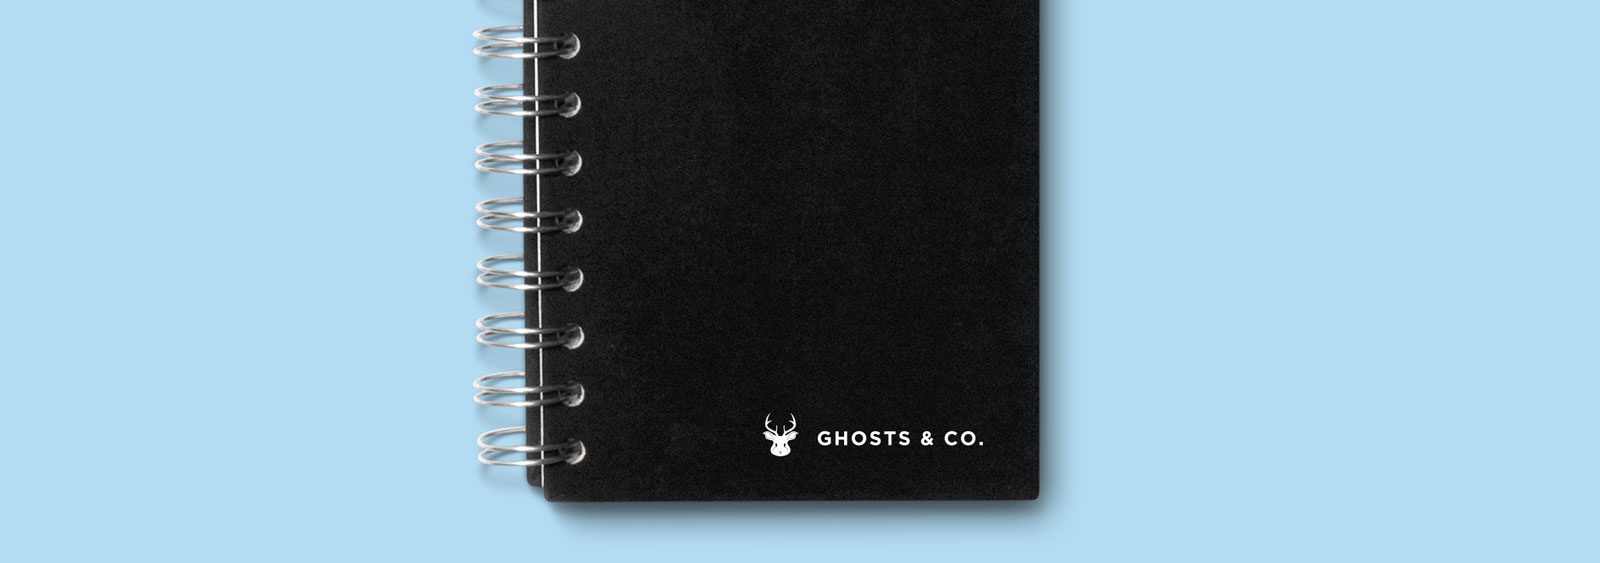 Ghosts & Co. Brand Design